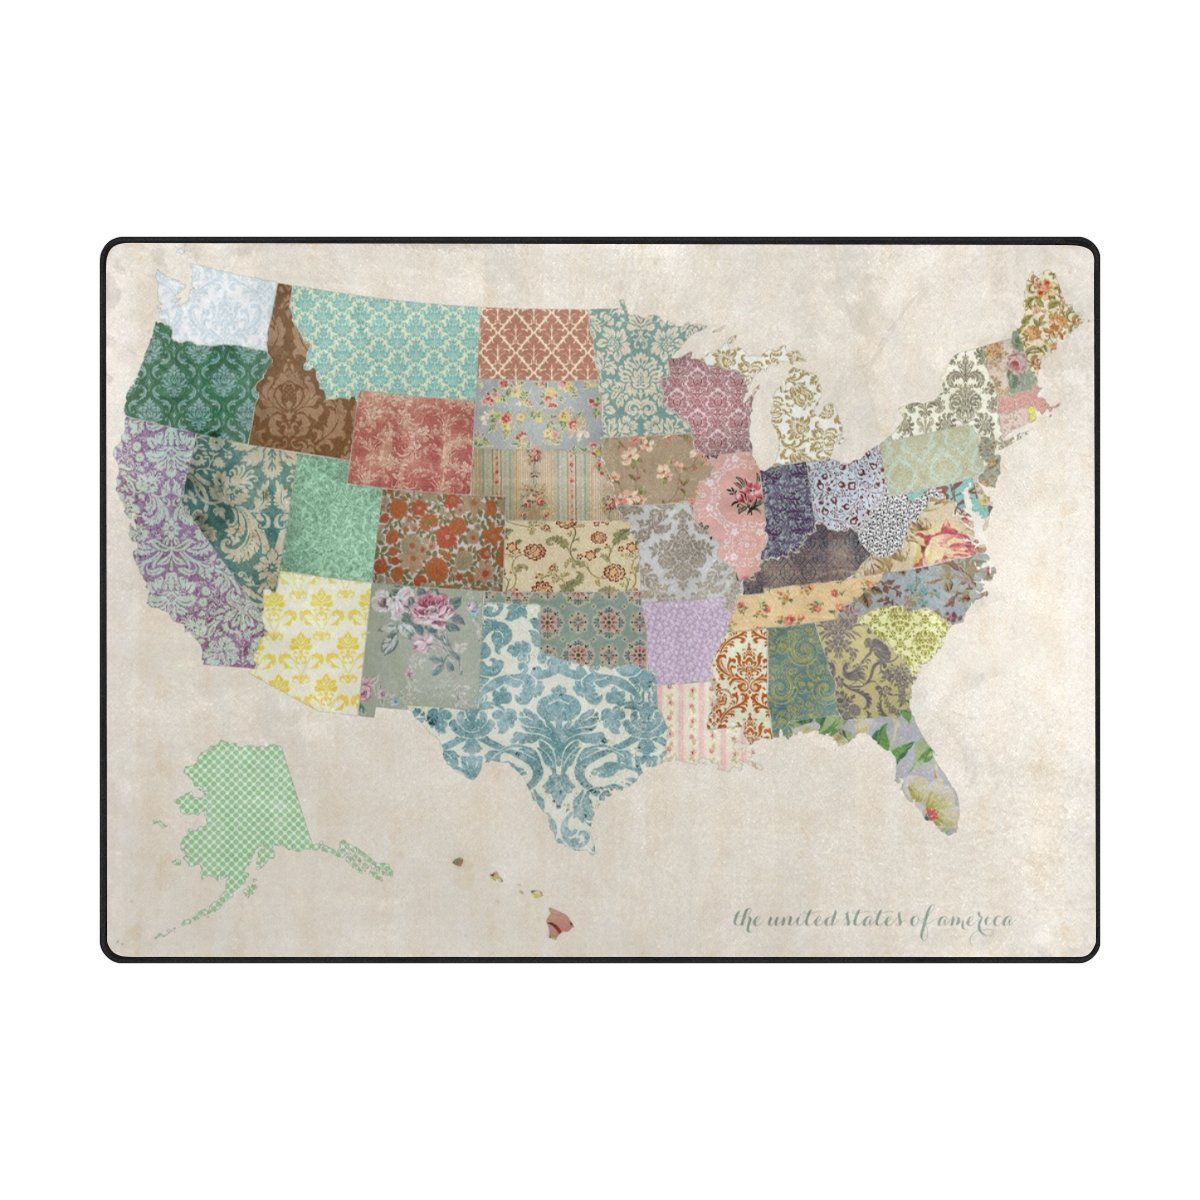 Amazon my daily the united states of america map floral area amazon my daily the united states of america map floral area rug 4 gumiabroncs Images